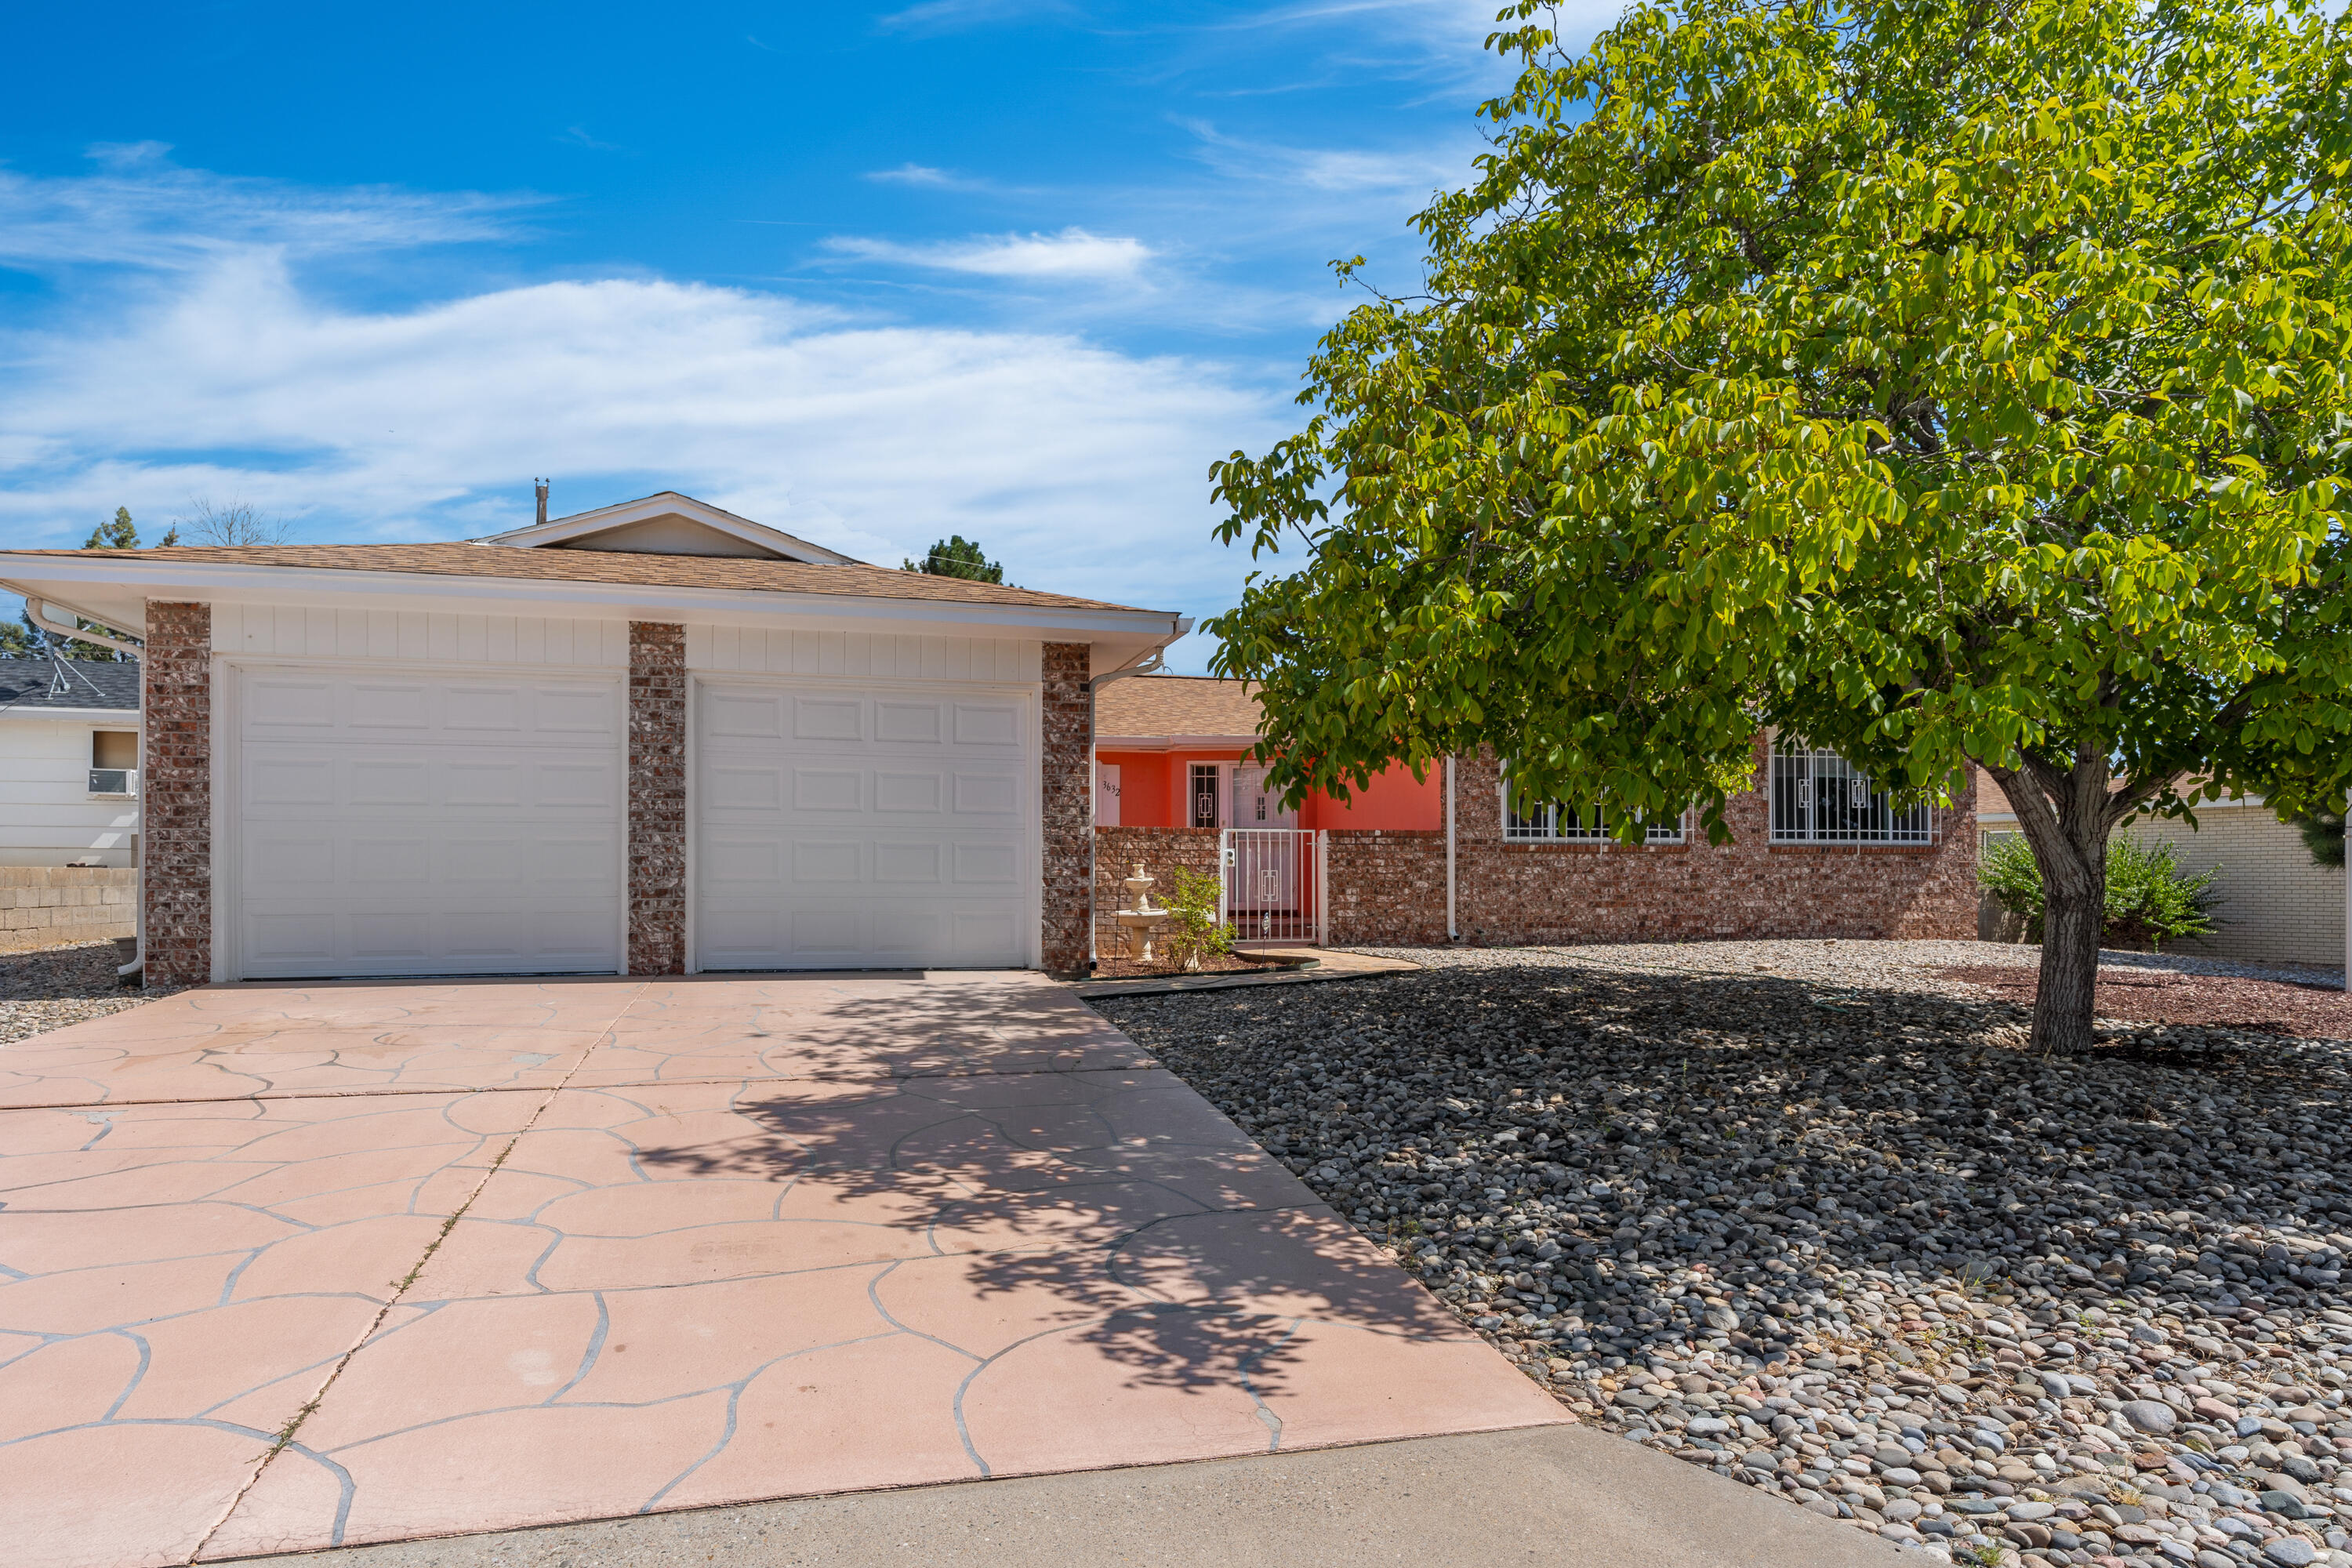 Great Location!!! Beautiful 3 bedroom 2 bathroom single story house located in the northeast Albuquerque area. Open kitchen over looking a spacious living room with access through French doors to a big spacious sun room. Check it out before its gone, and set up a showing today!